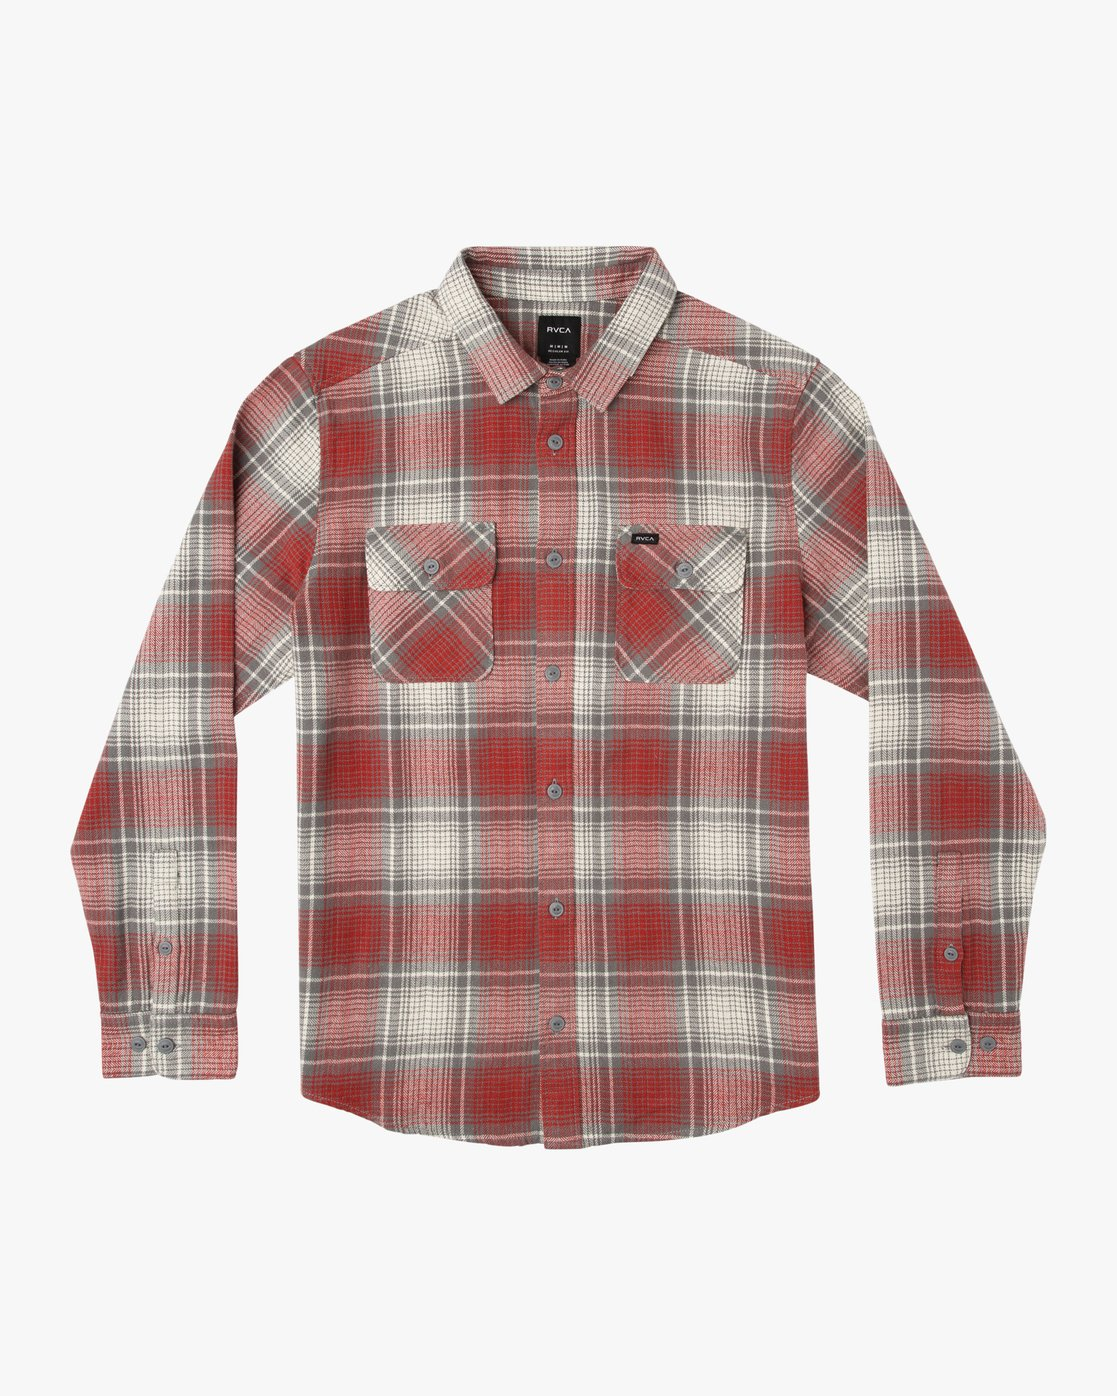 0 High Plains Plaid Flannel Grey M558SRHP RVCA